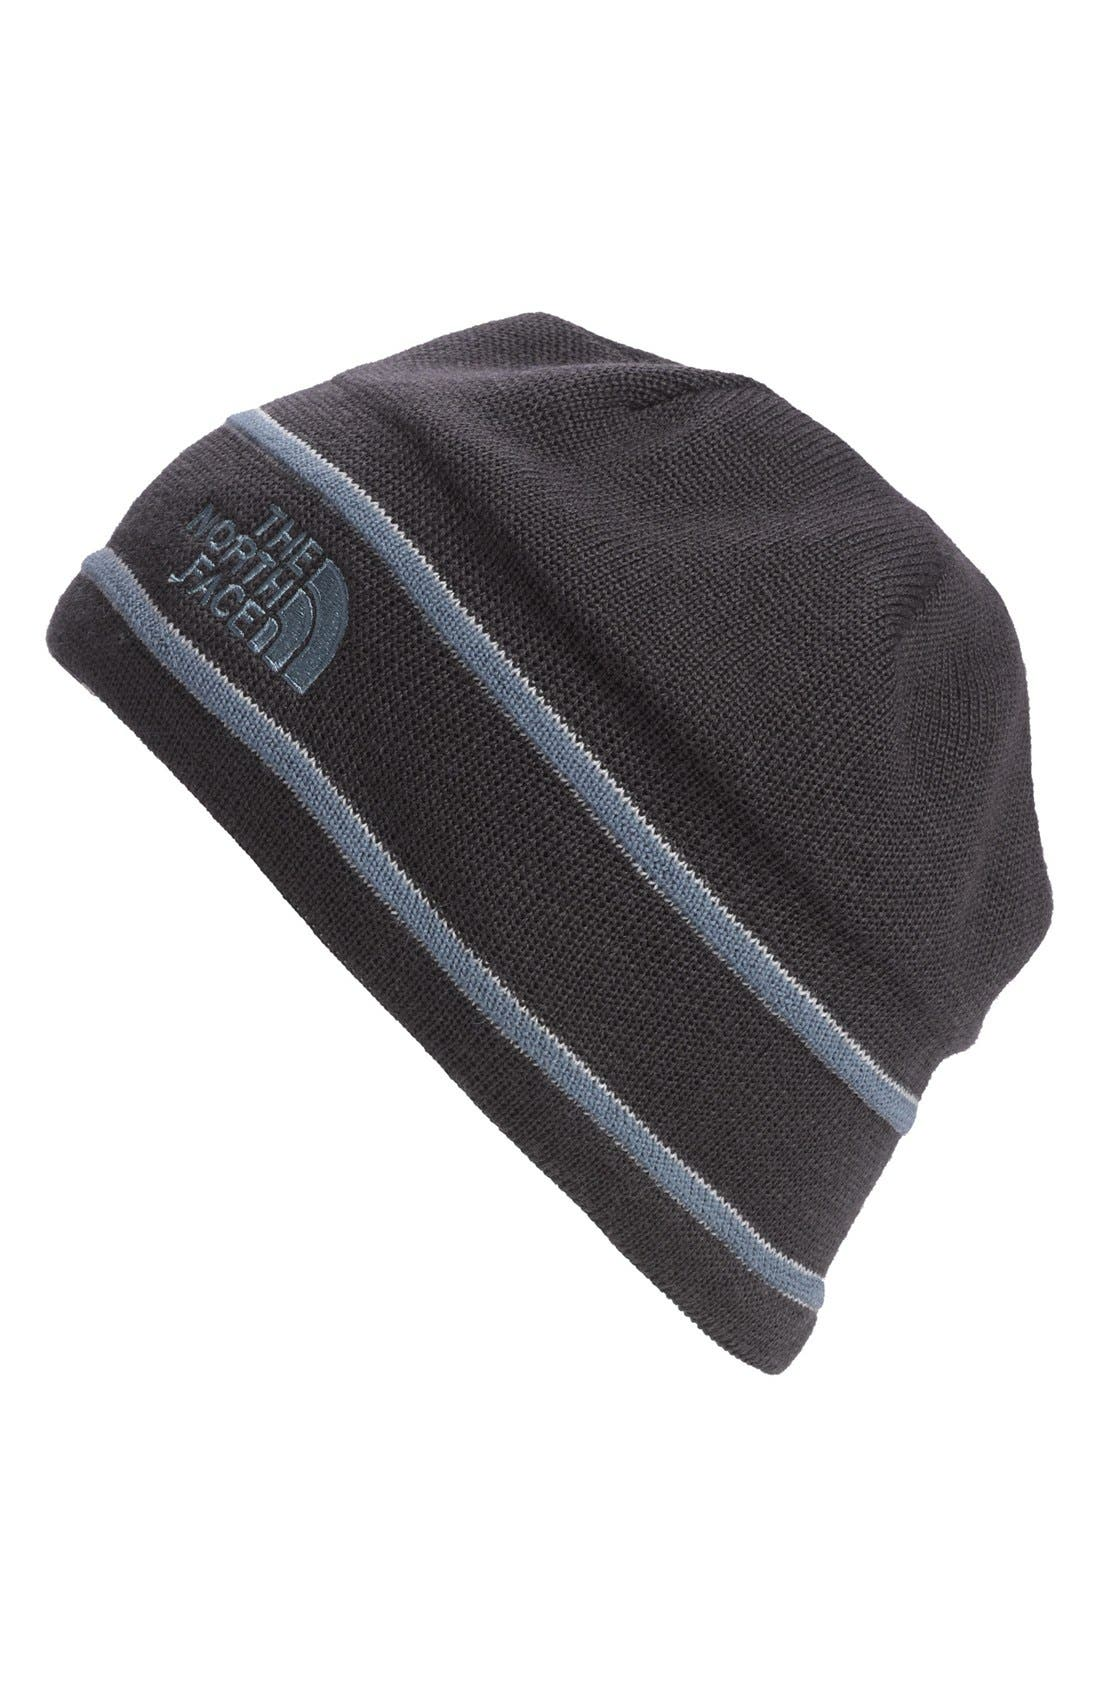 Main Image - The North Face Knit Cap